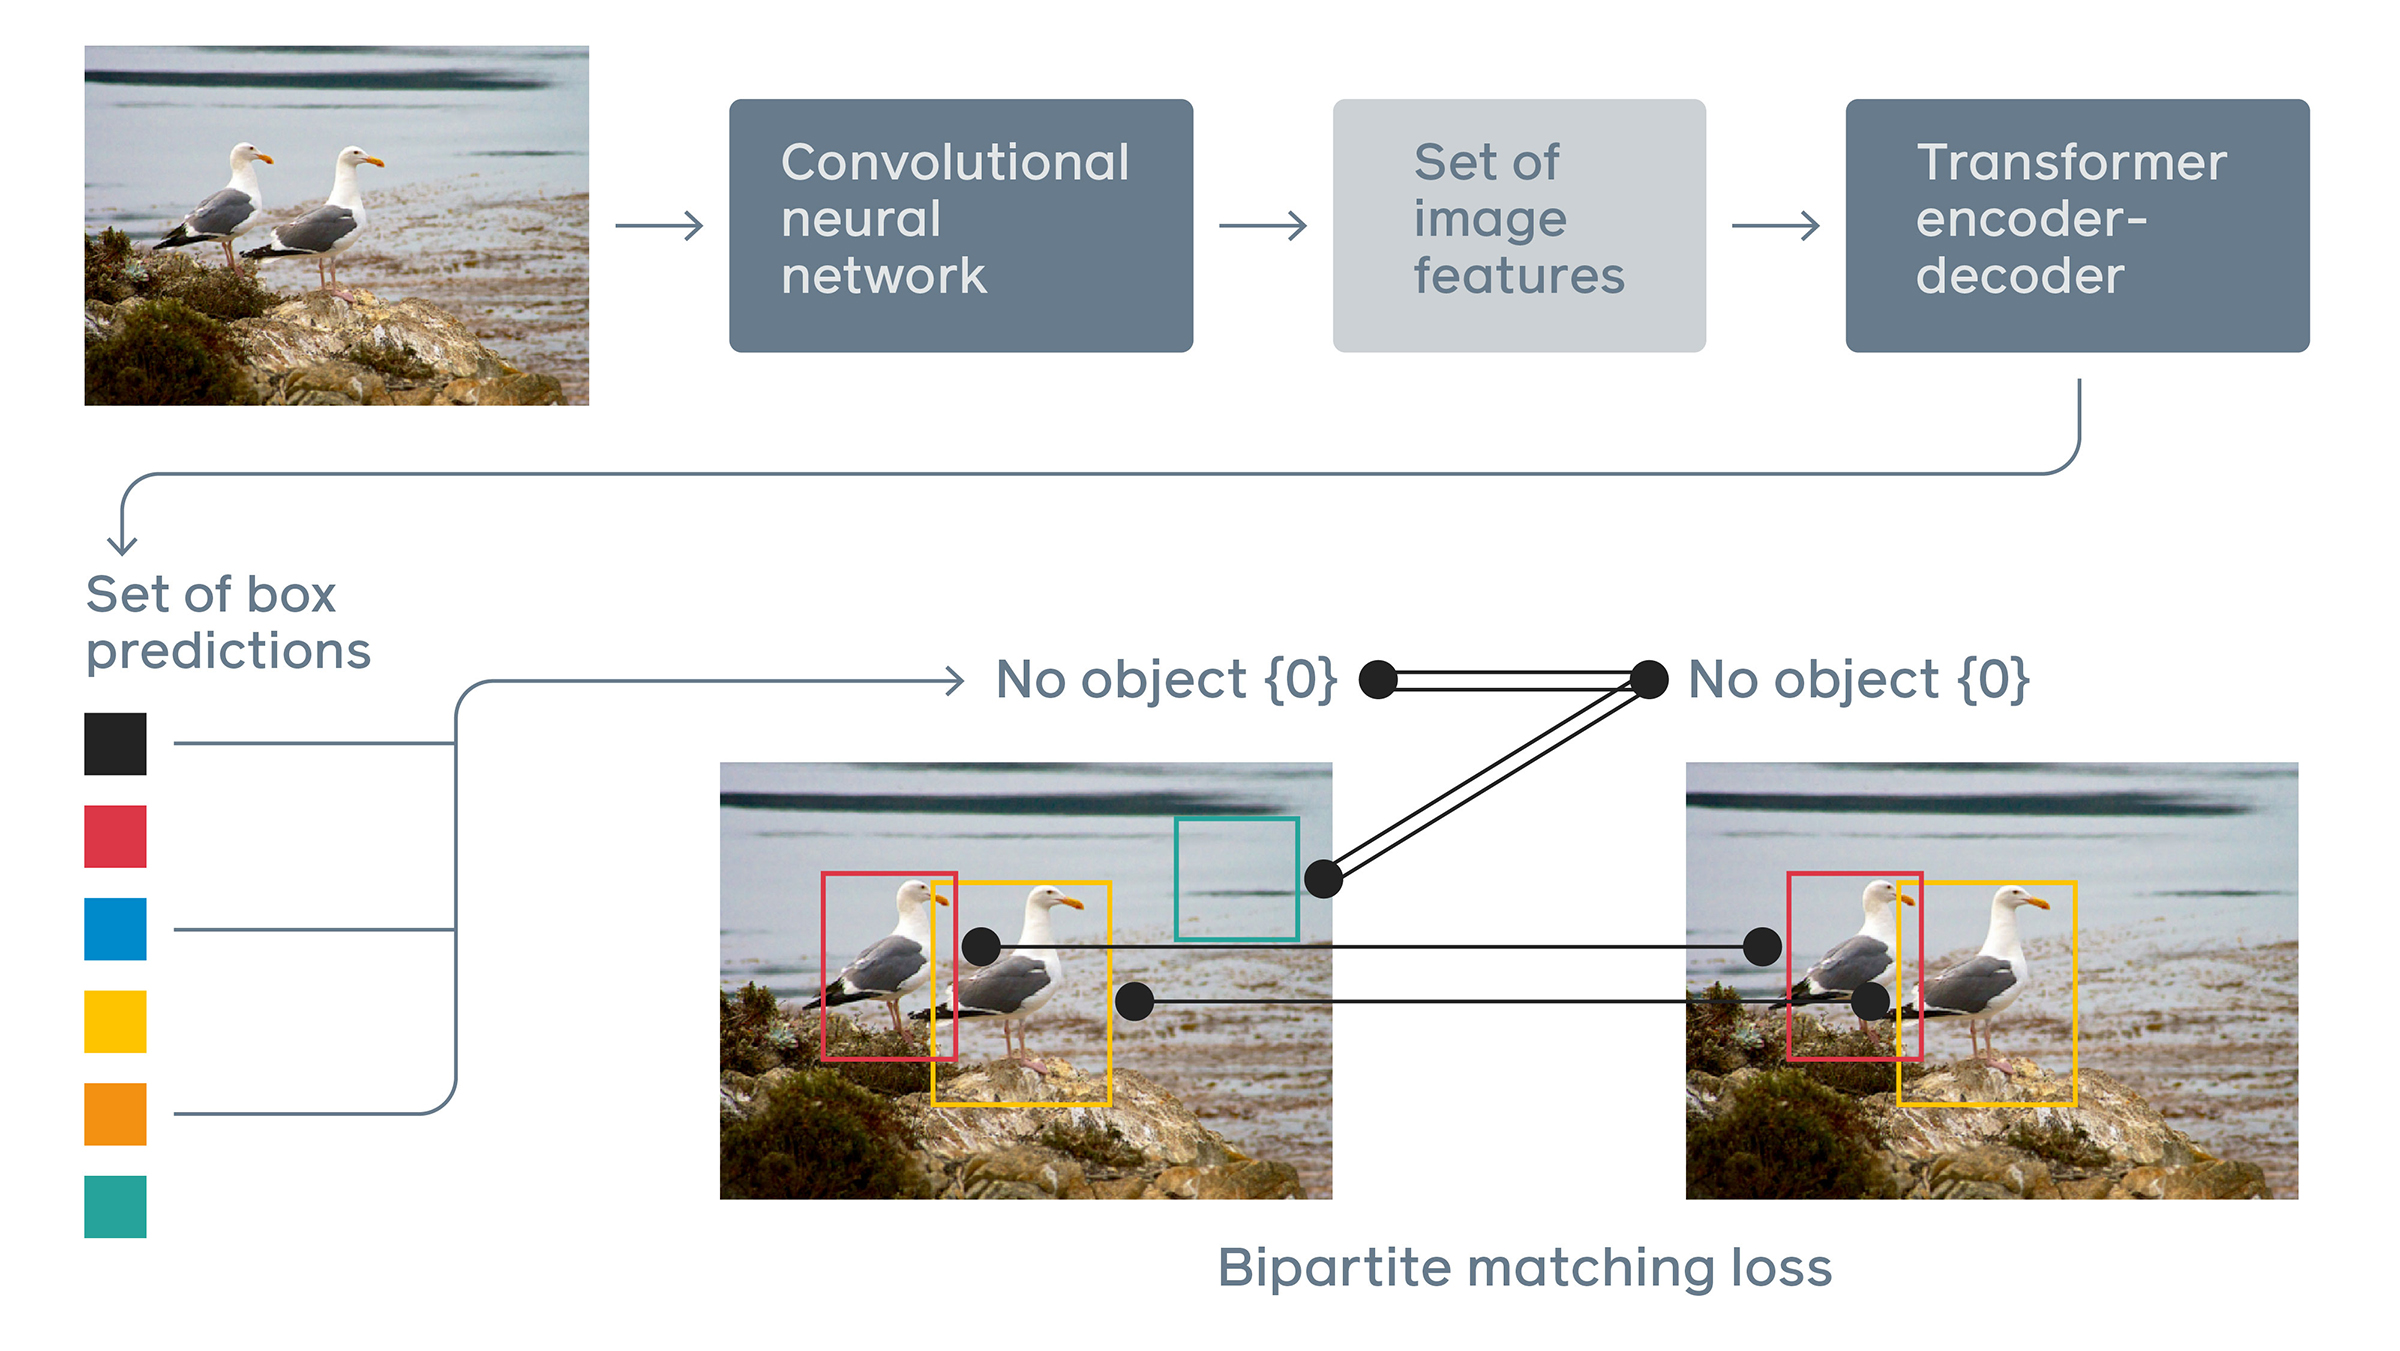 DETR_object_detection